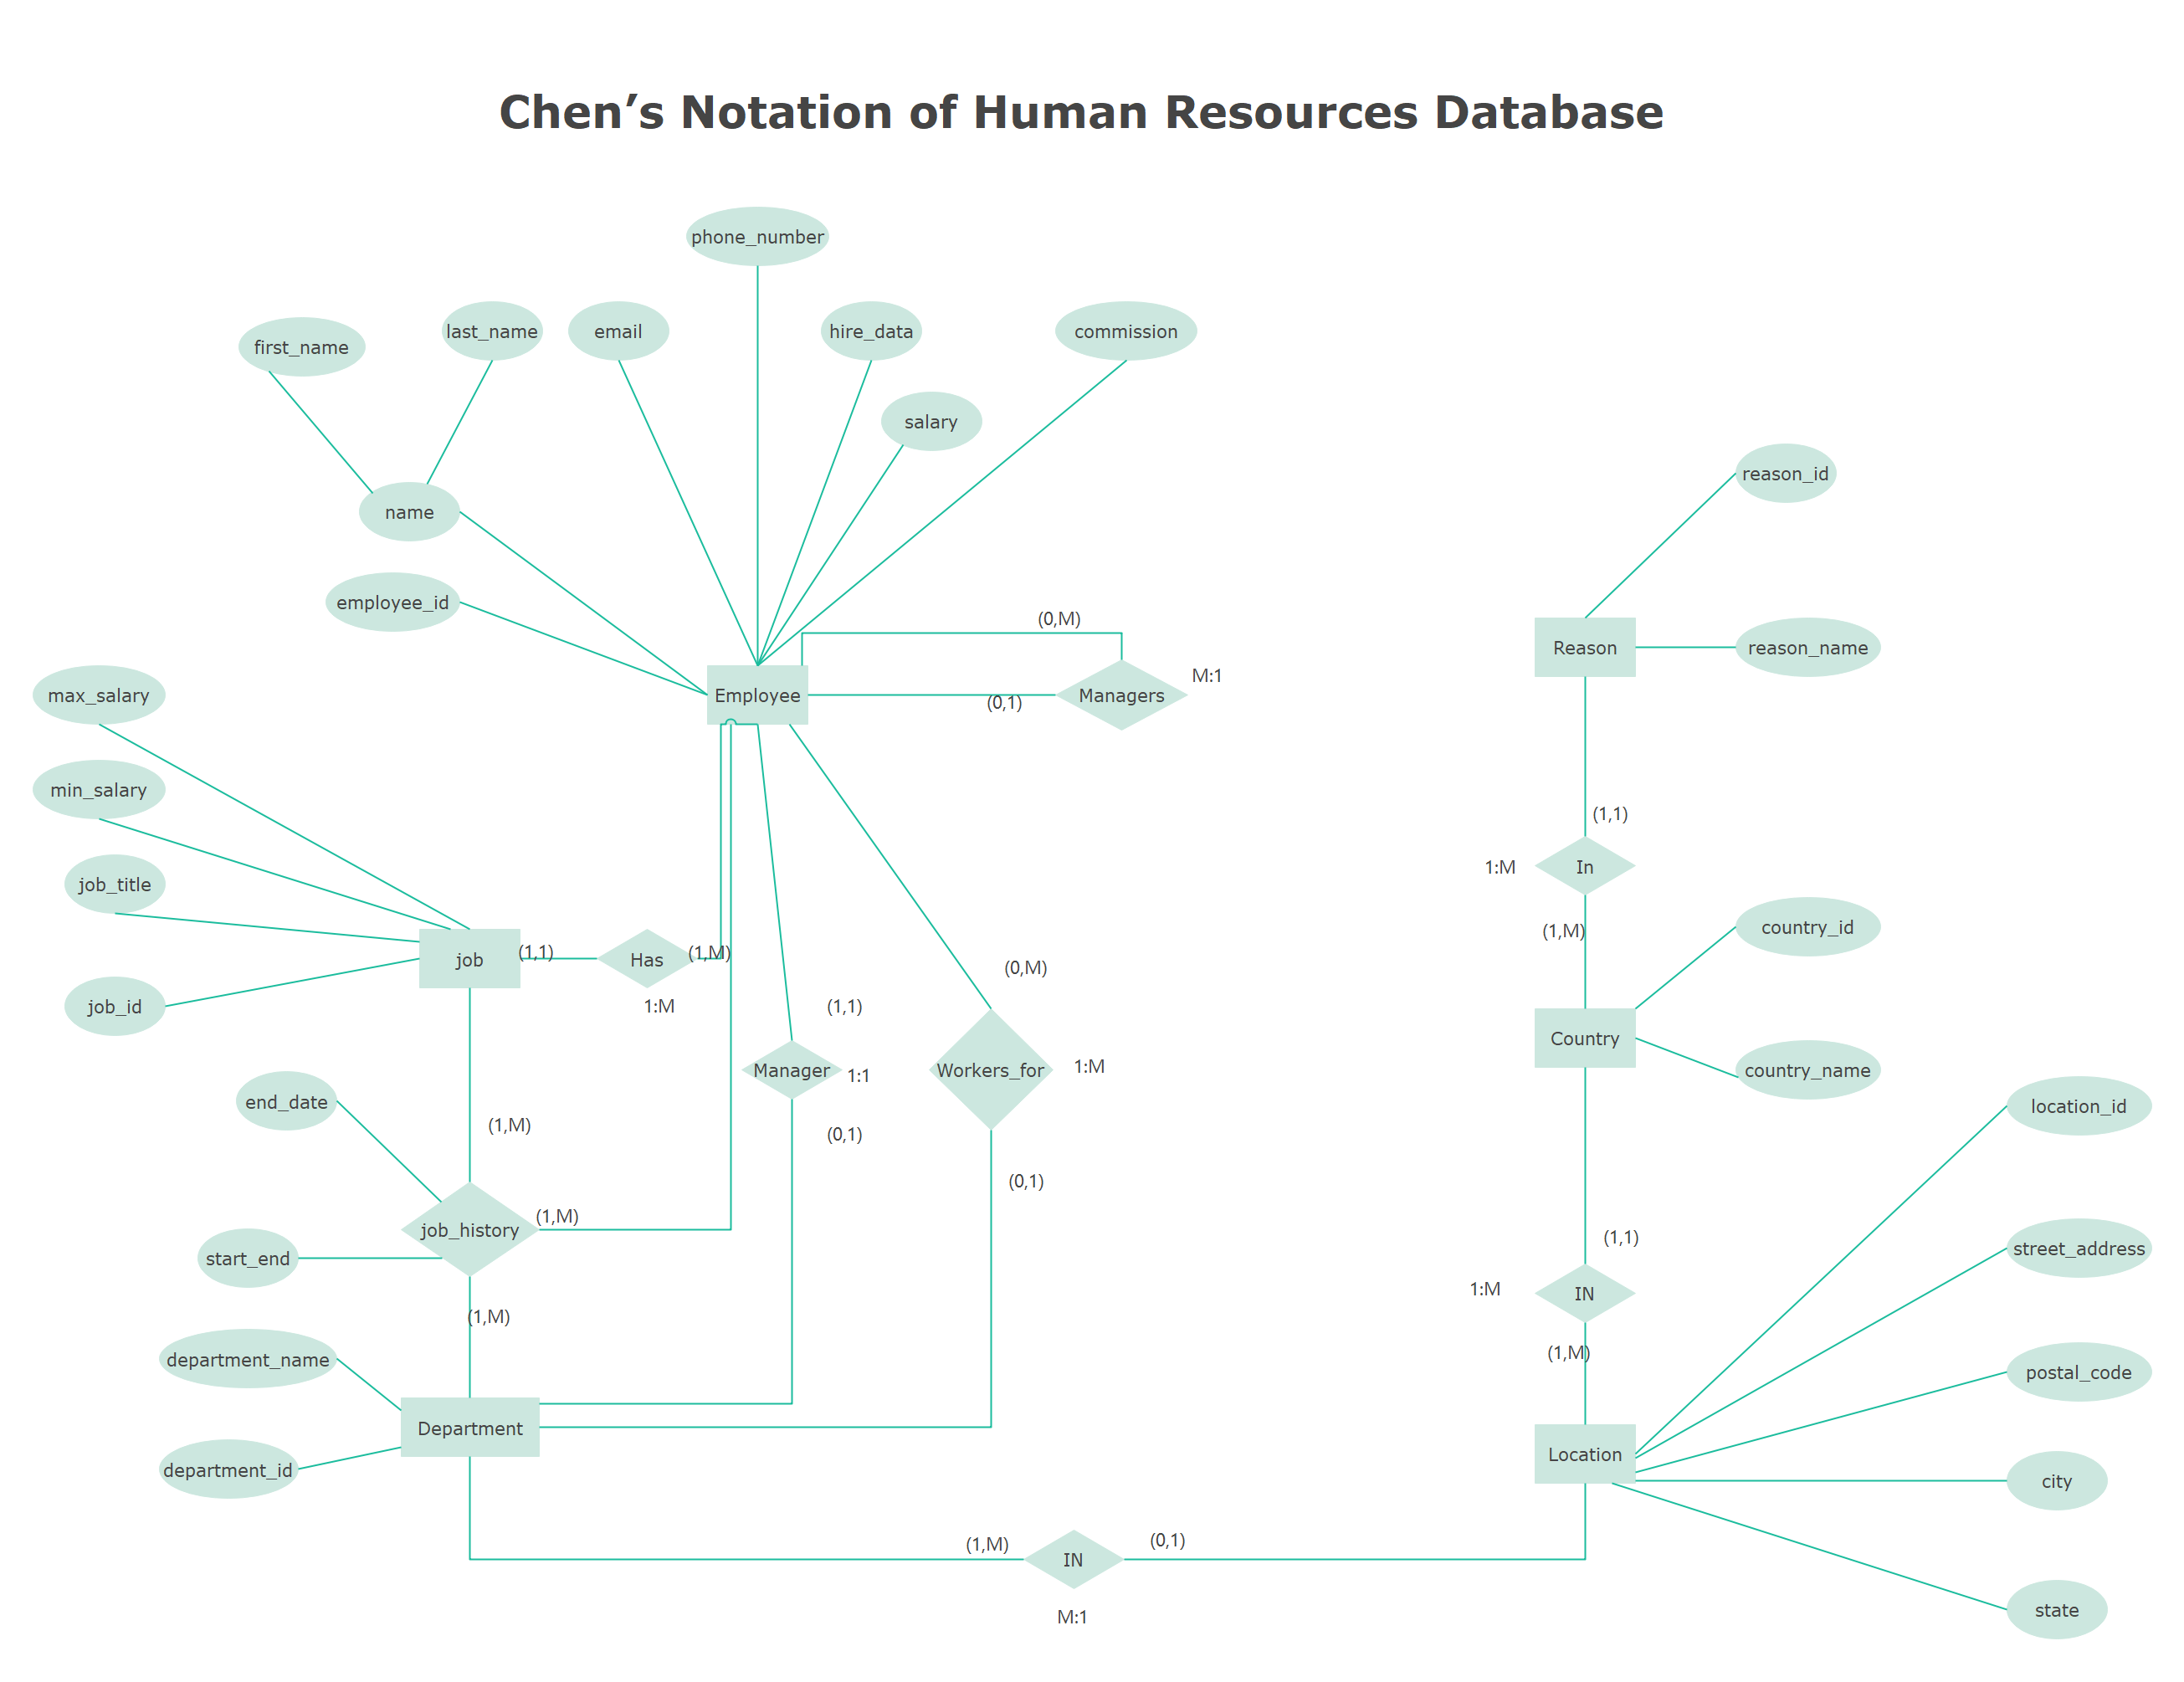 Chen's Notation of Human Resources Database